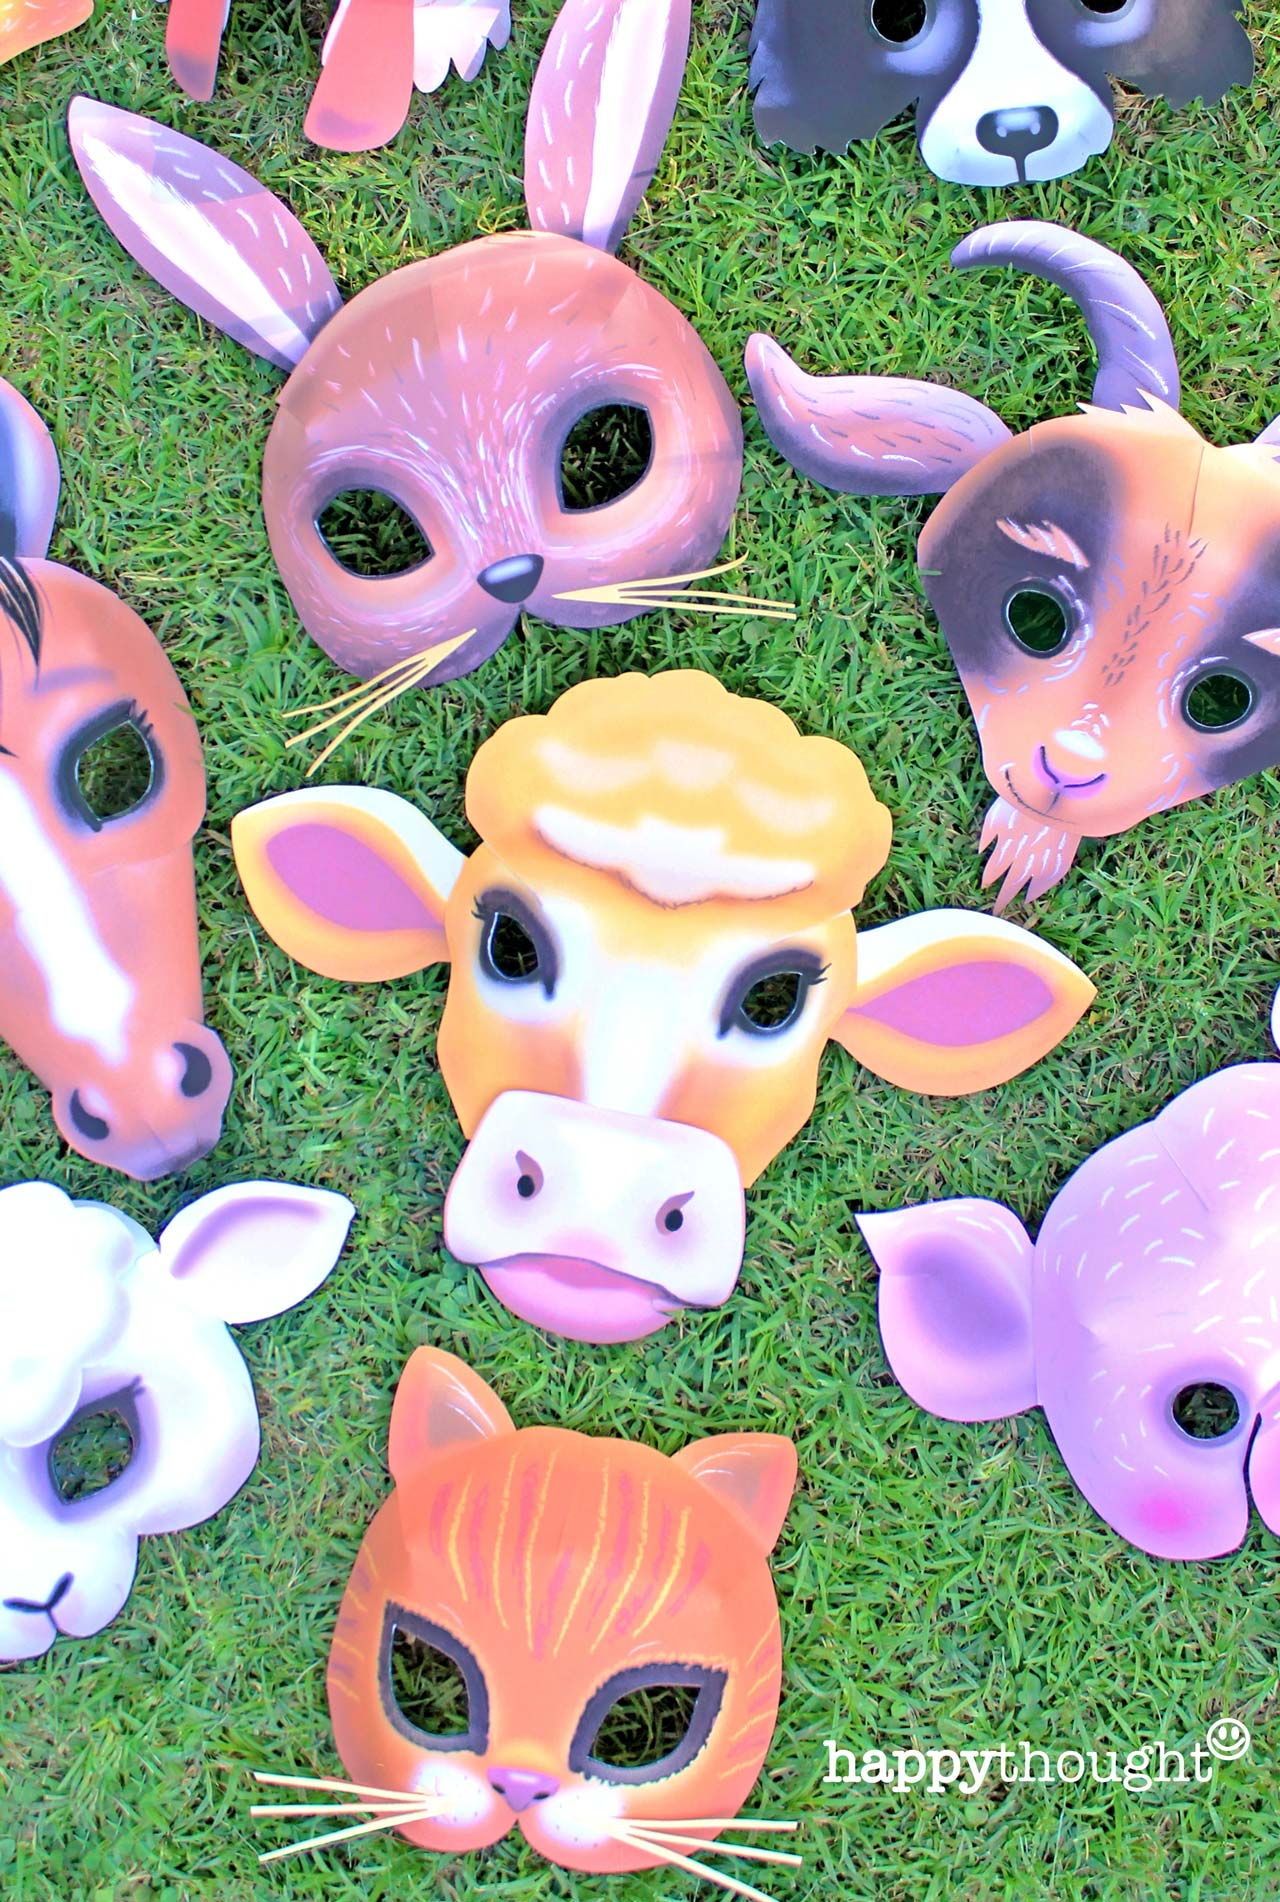 farm animal masks Rabbit, Rooster, Dog, Horse, Pig, Sheep, Cow, Duck, Cat and Goat